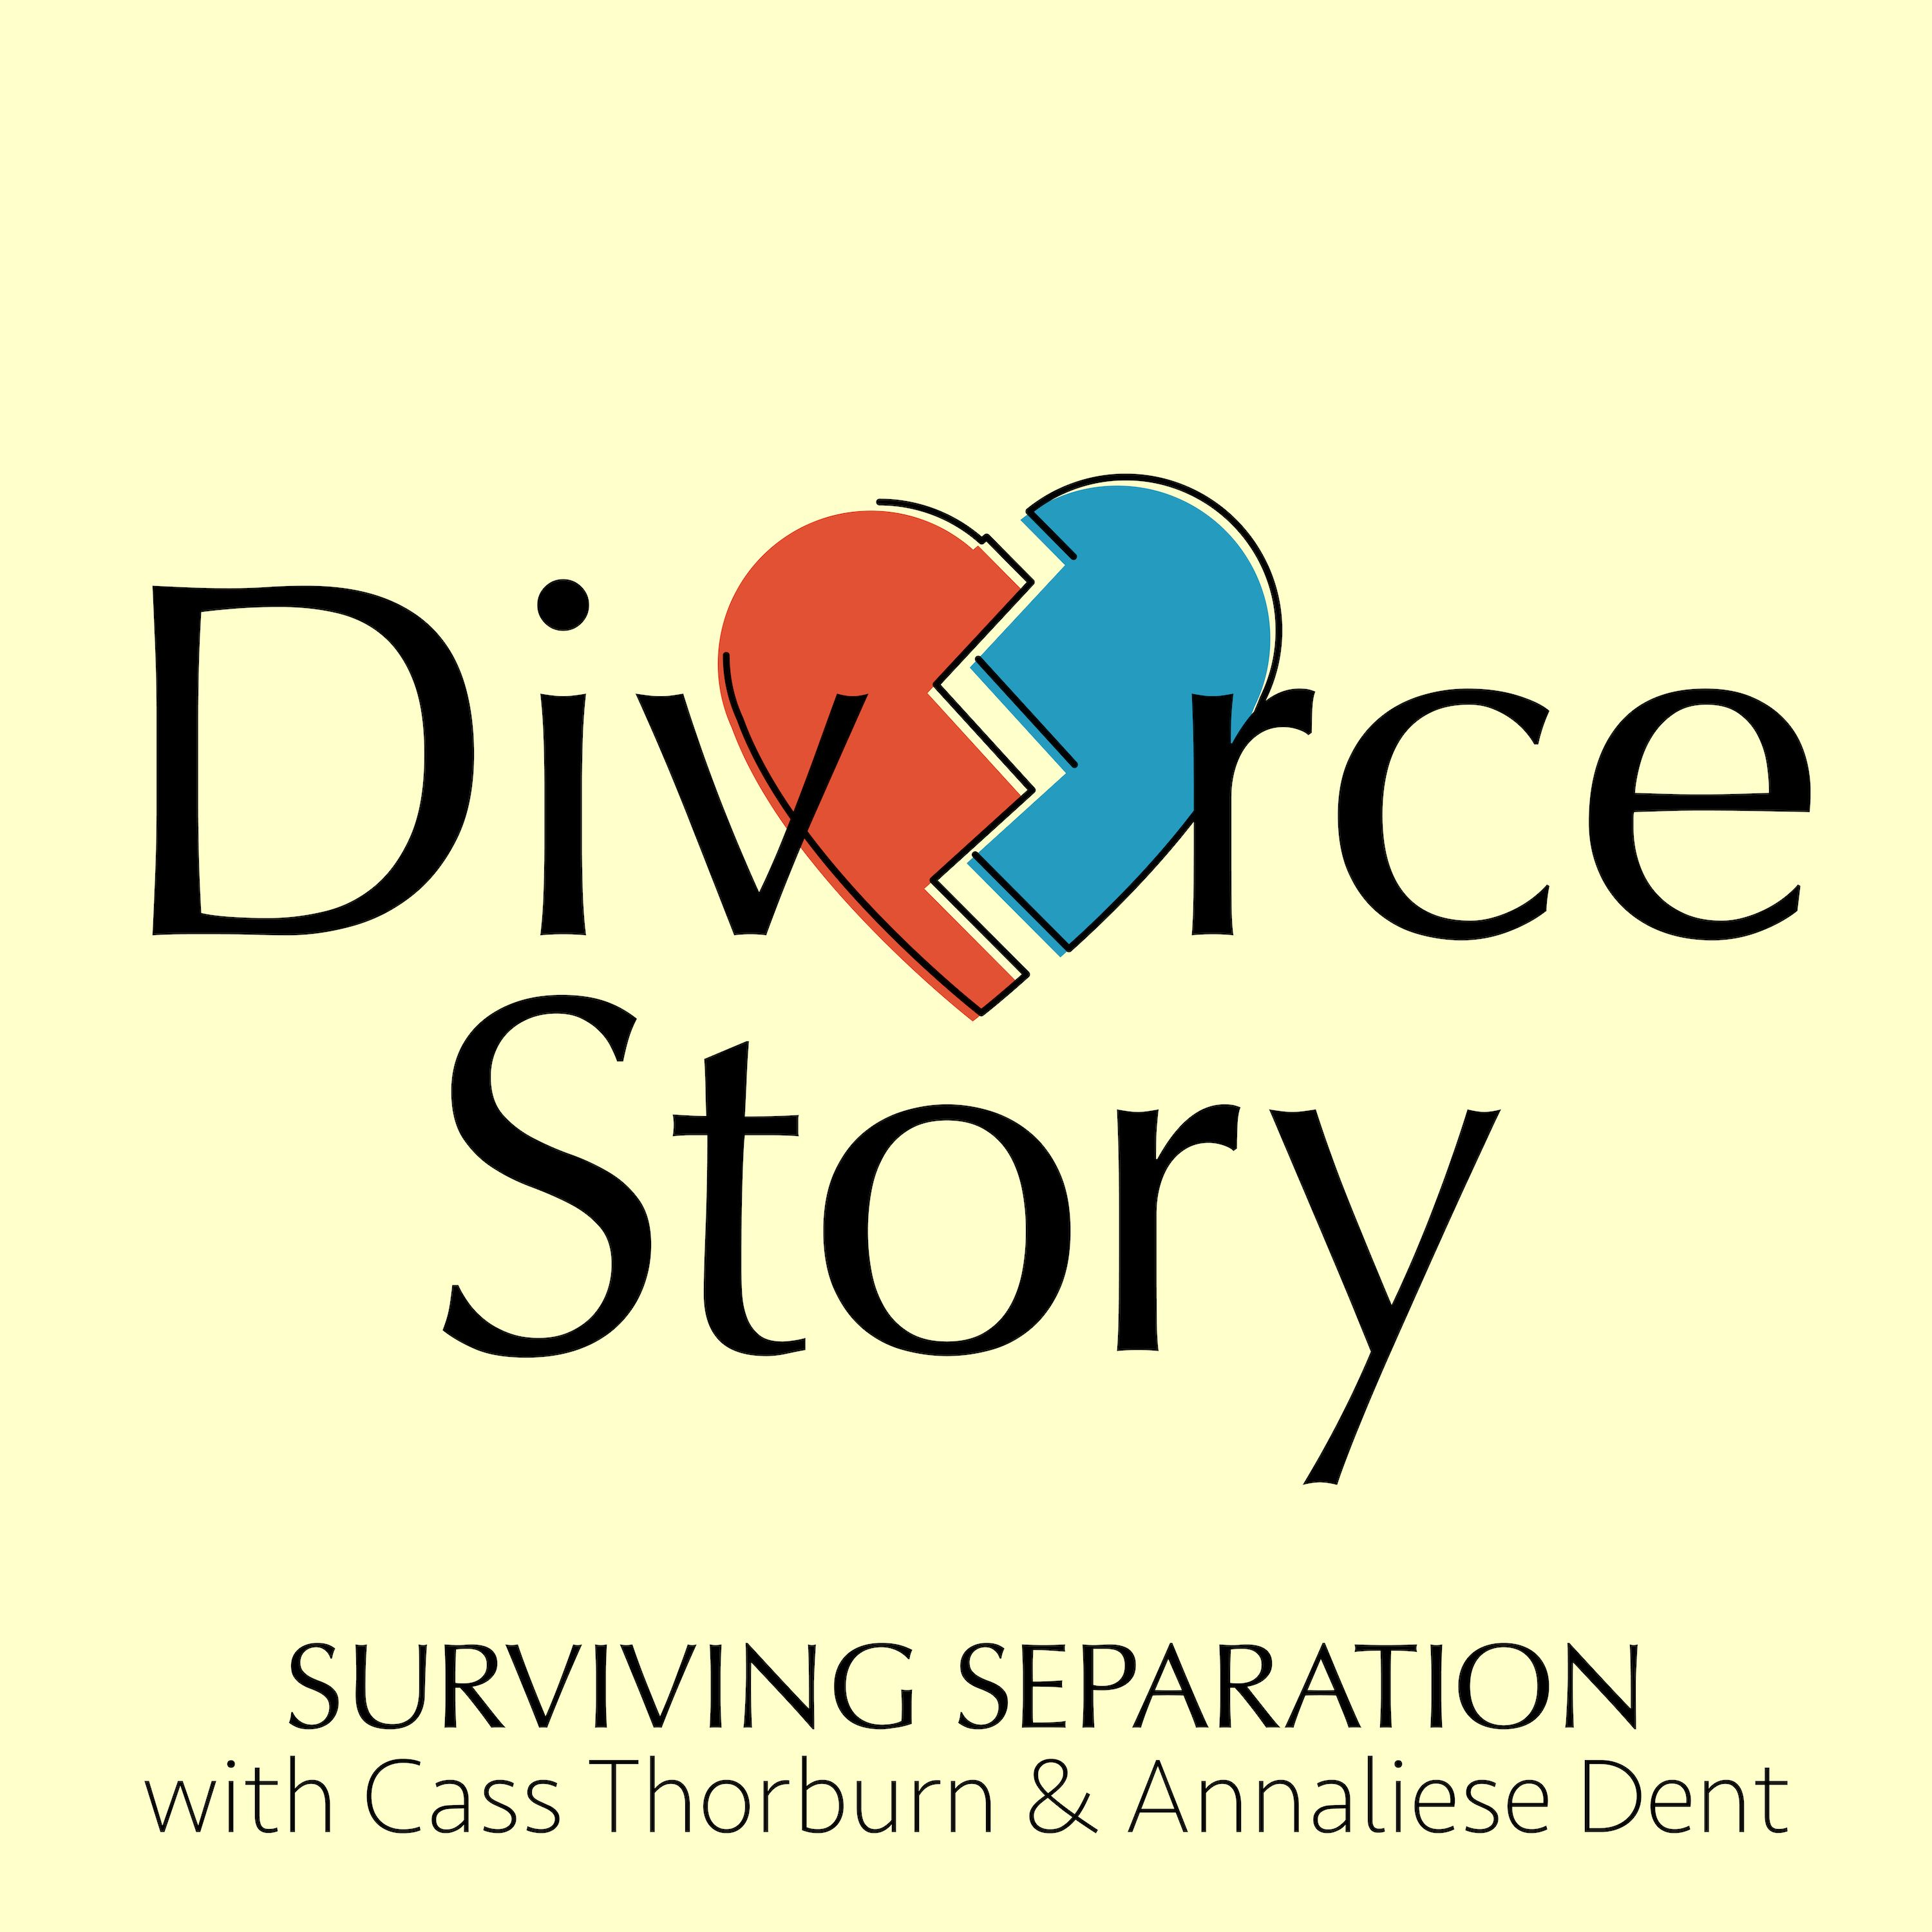 Divorce Story - Fleeing an abusive relationship